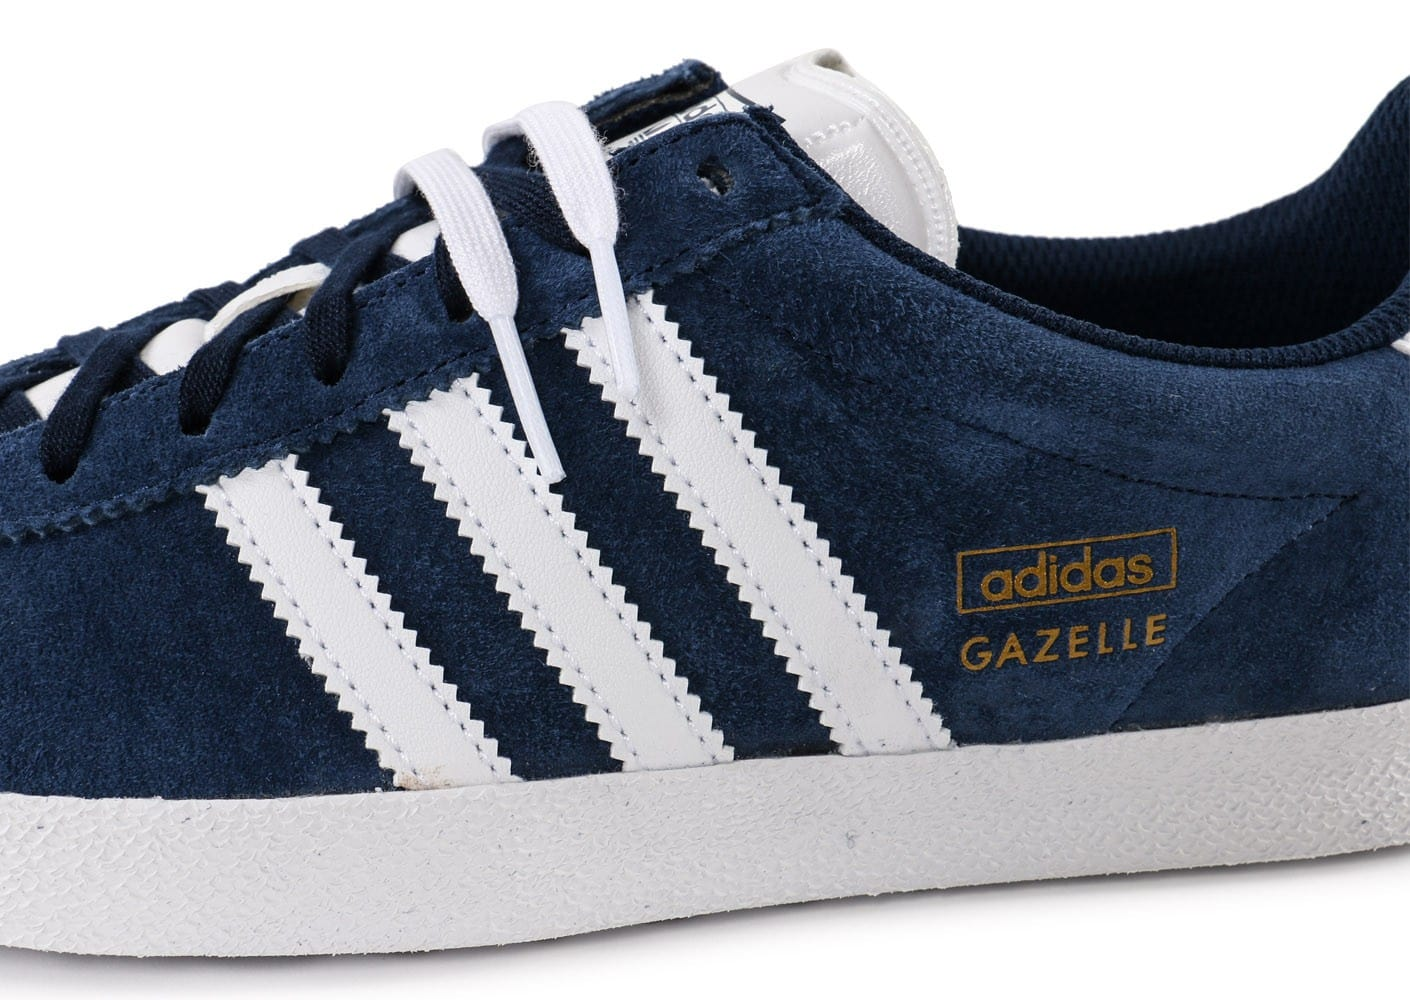 adidas gazelle 2 bleu ciel. Black Bedroom Furniture Sets. Home Design Ideas